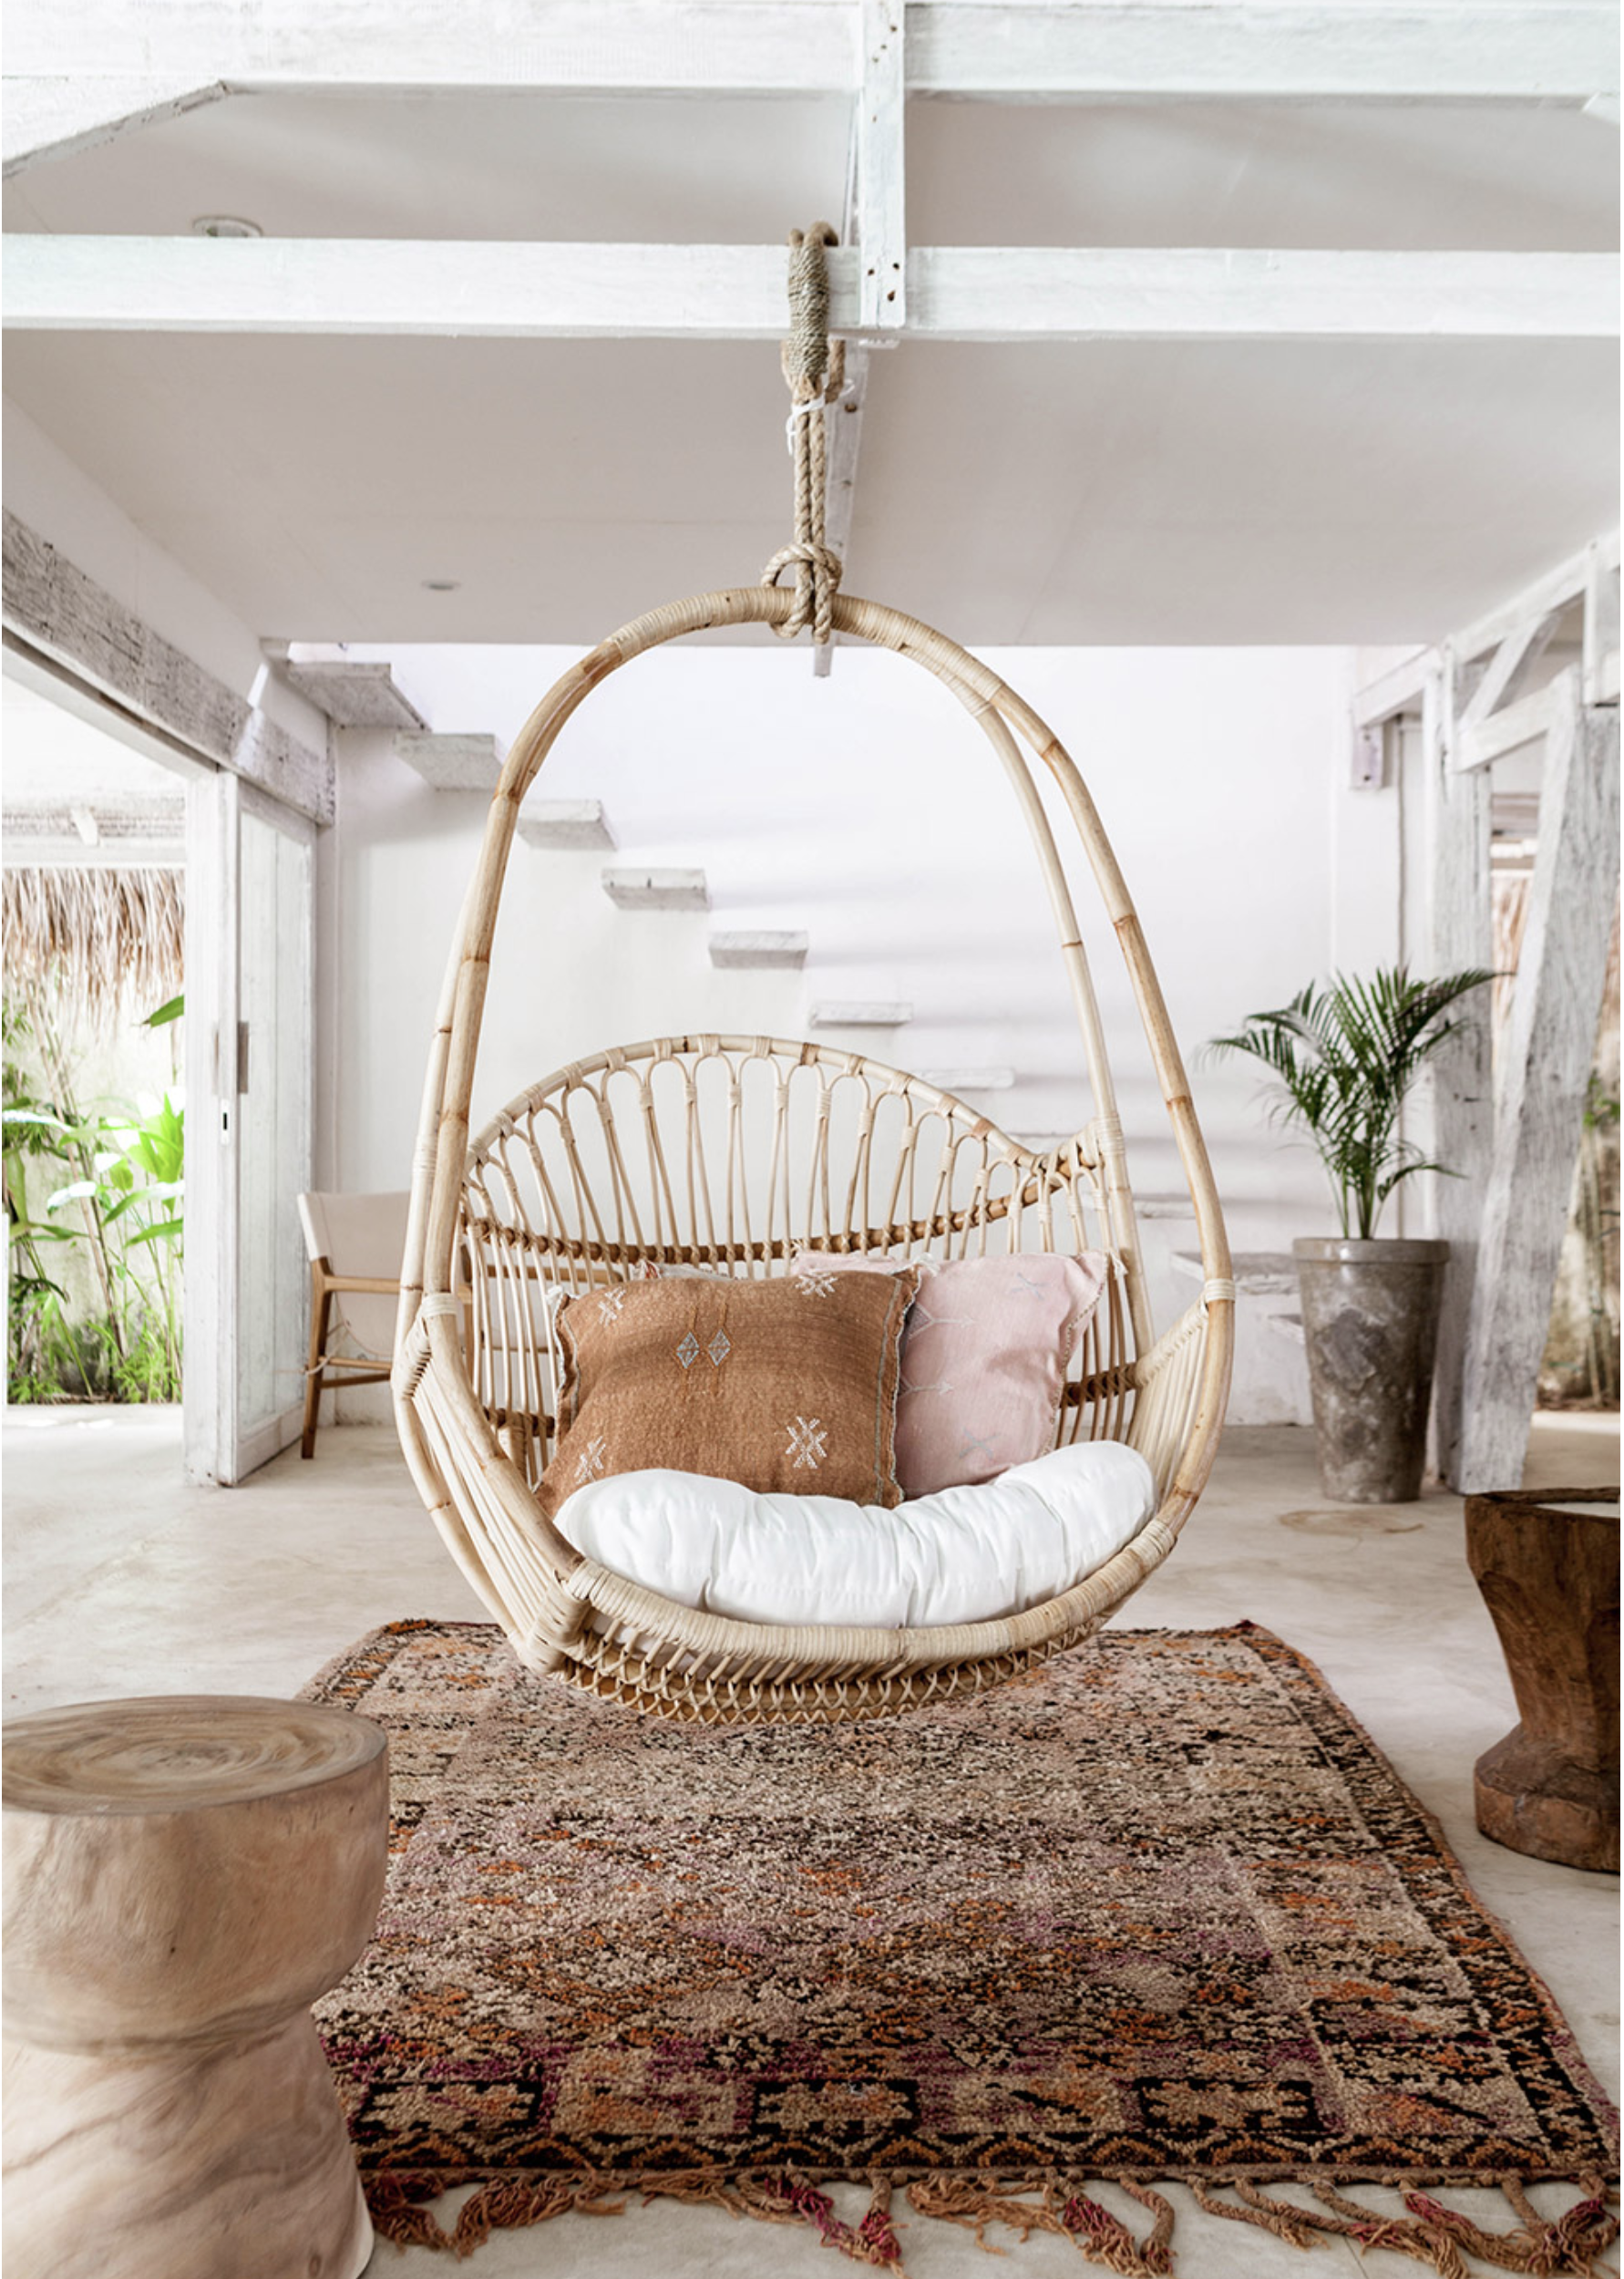 Stylish Boho egg chairs - Image via Bali Interiors feat. Kenya Hanging Chair from Yak + Yeti Trader.